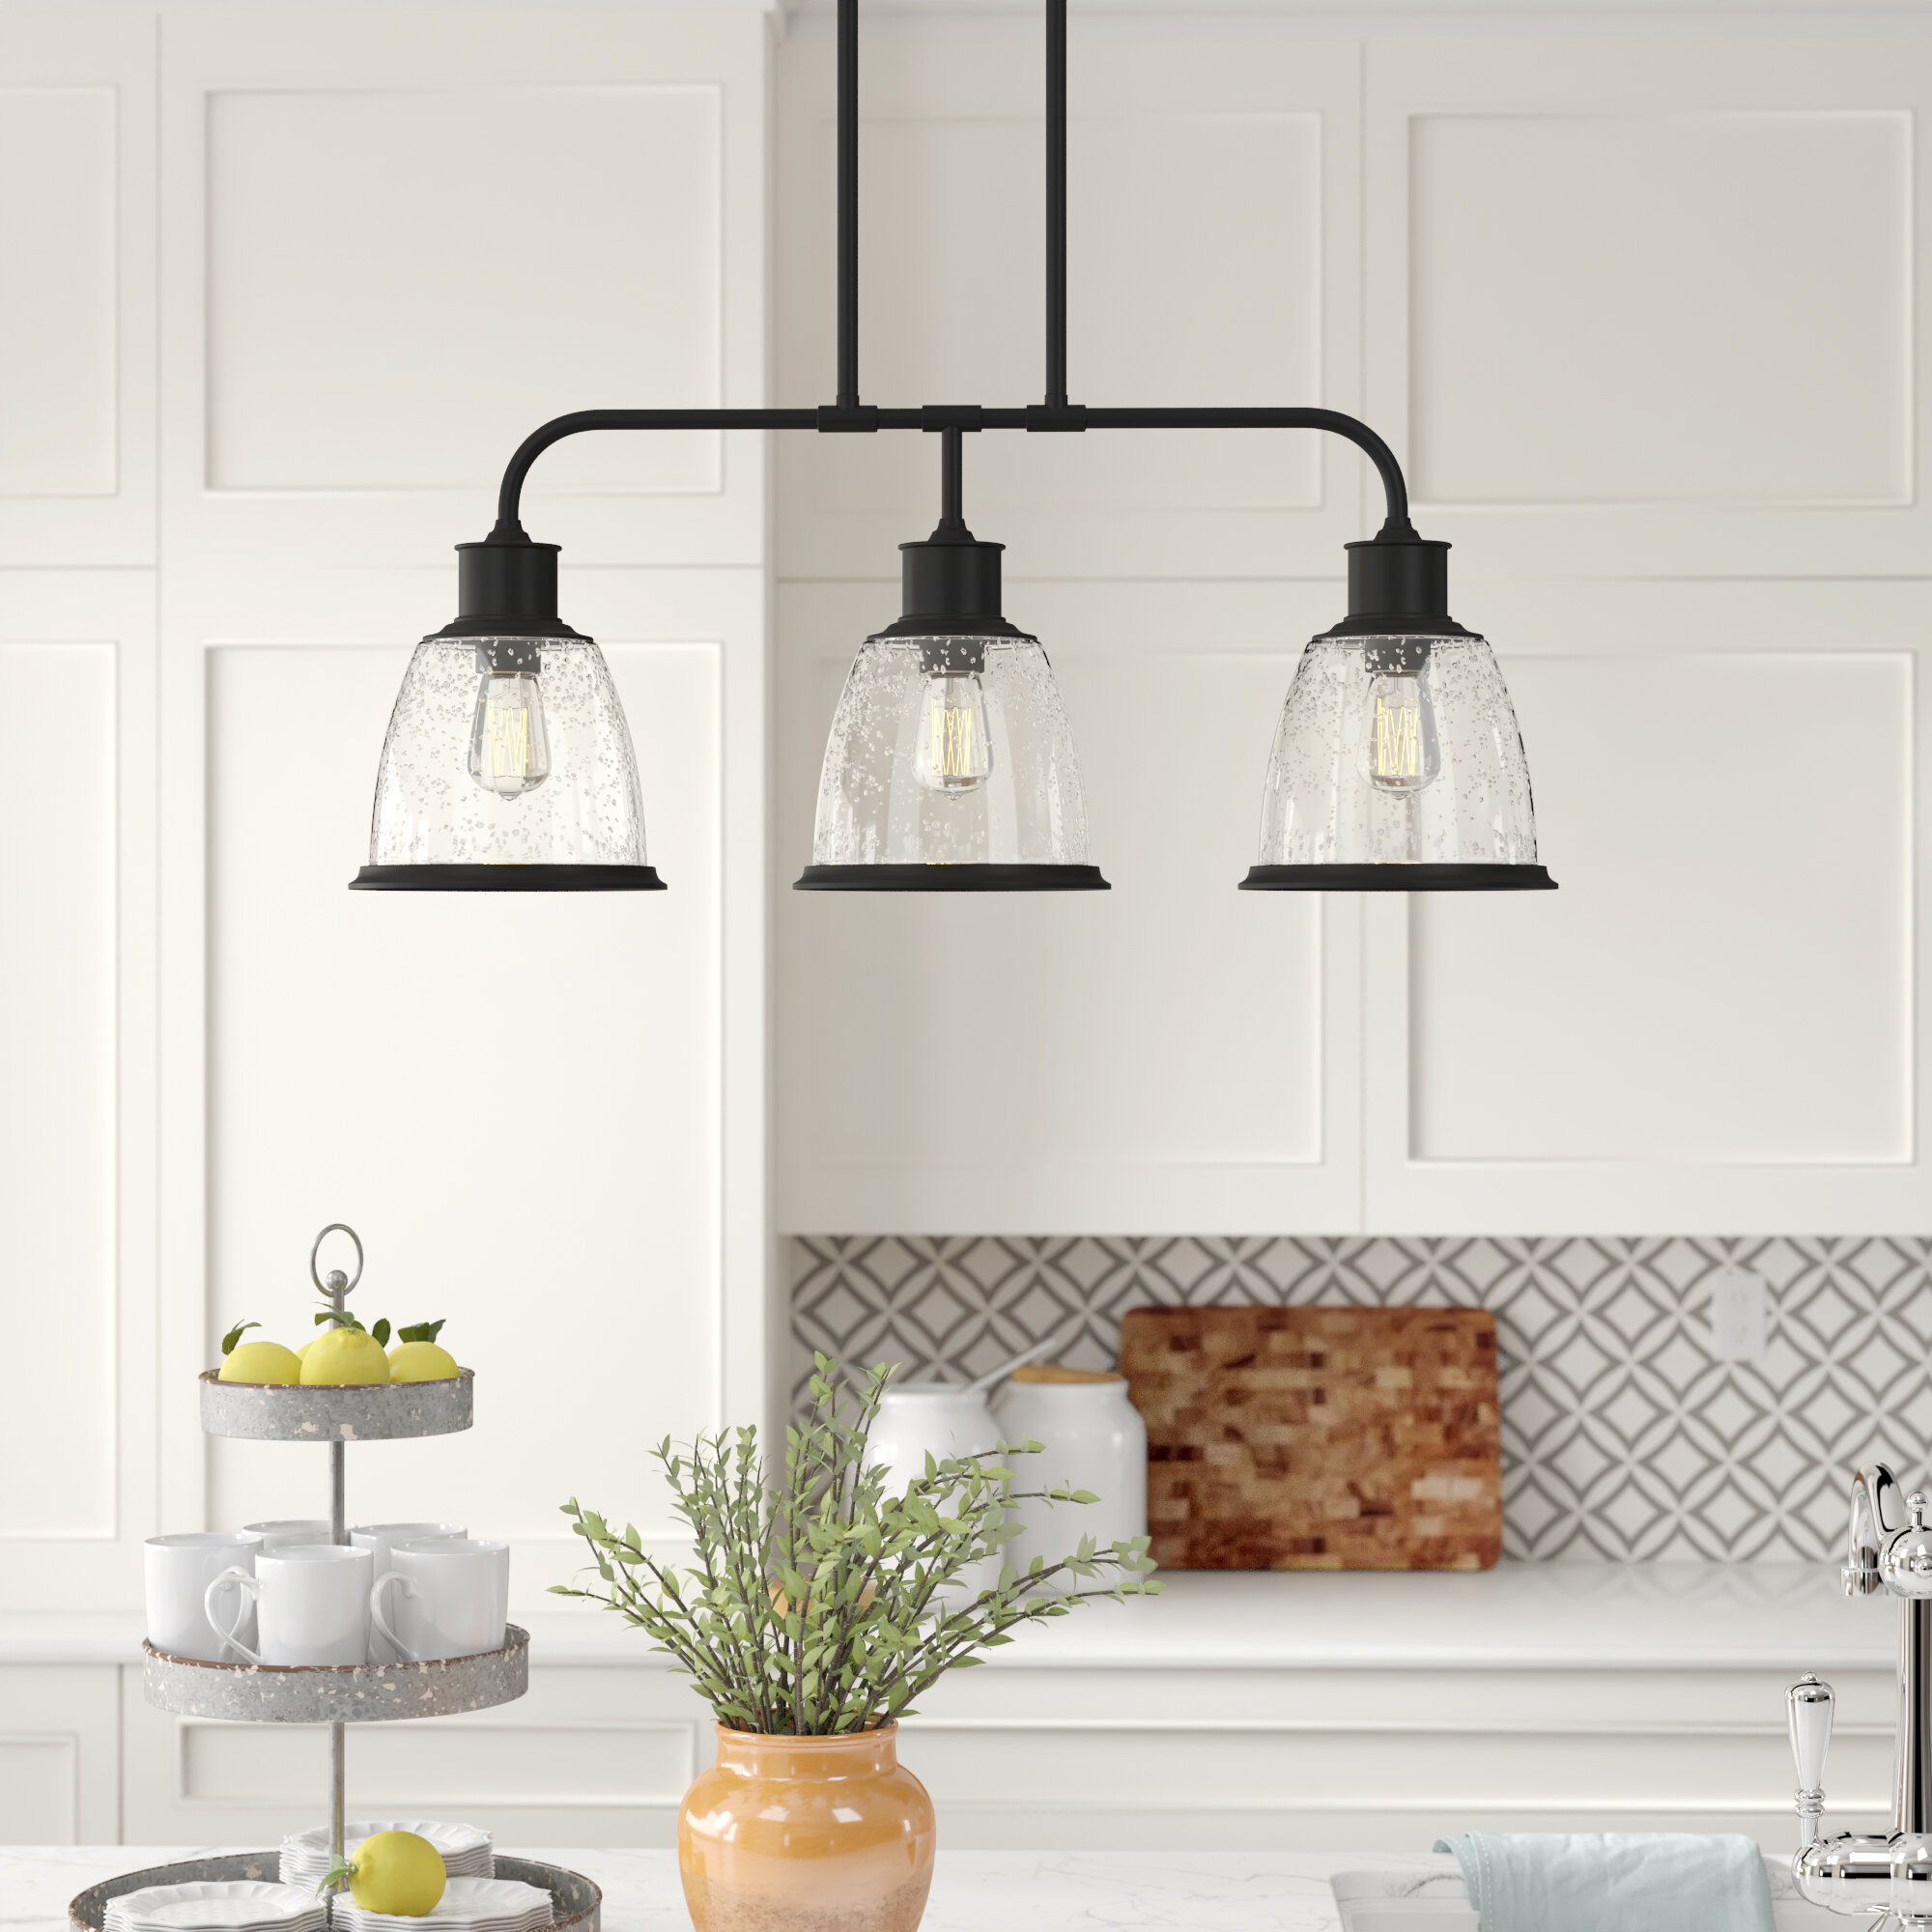 Ambler 3 Light Kitchen Island Bell Pendant For Yarger 1 Light Single Bell Pendants (View 21 of 30)